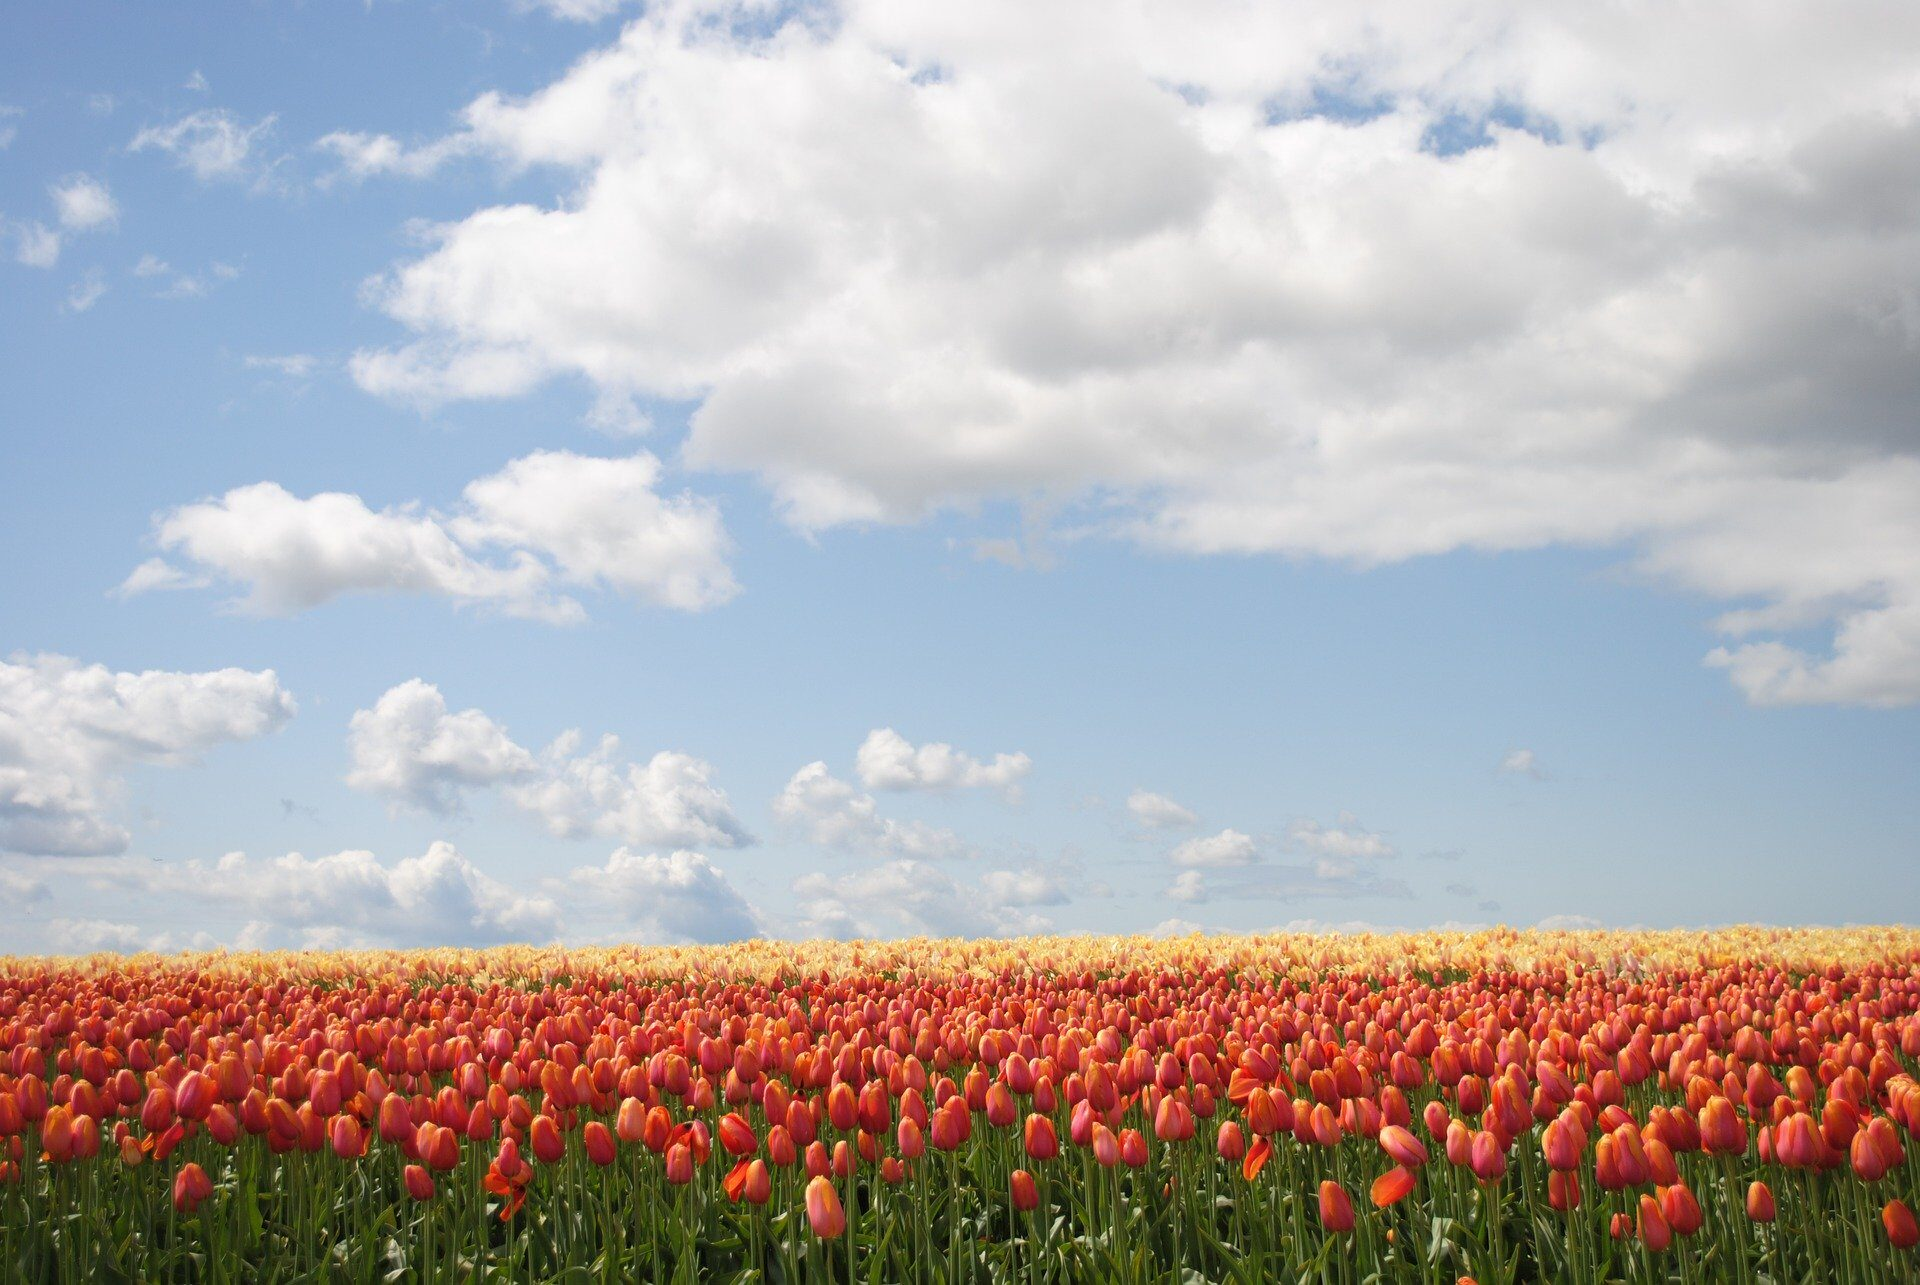 A tulip field in Holland - one of the sites you'll see in the This is Holldan 5D experience - a great way to spend an evening in Amsterdam Noord.